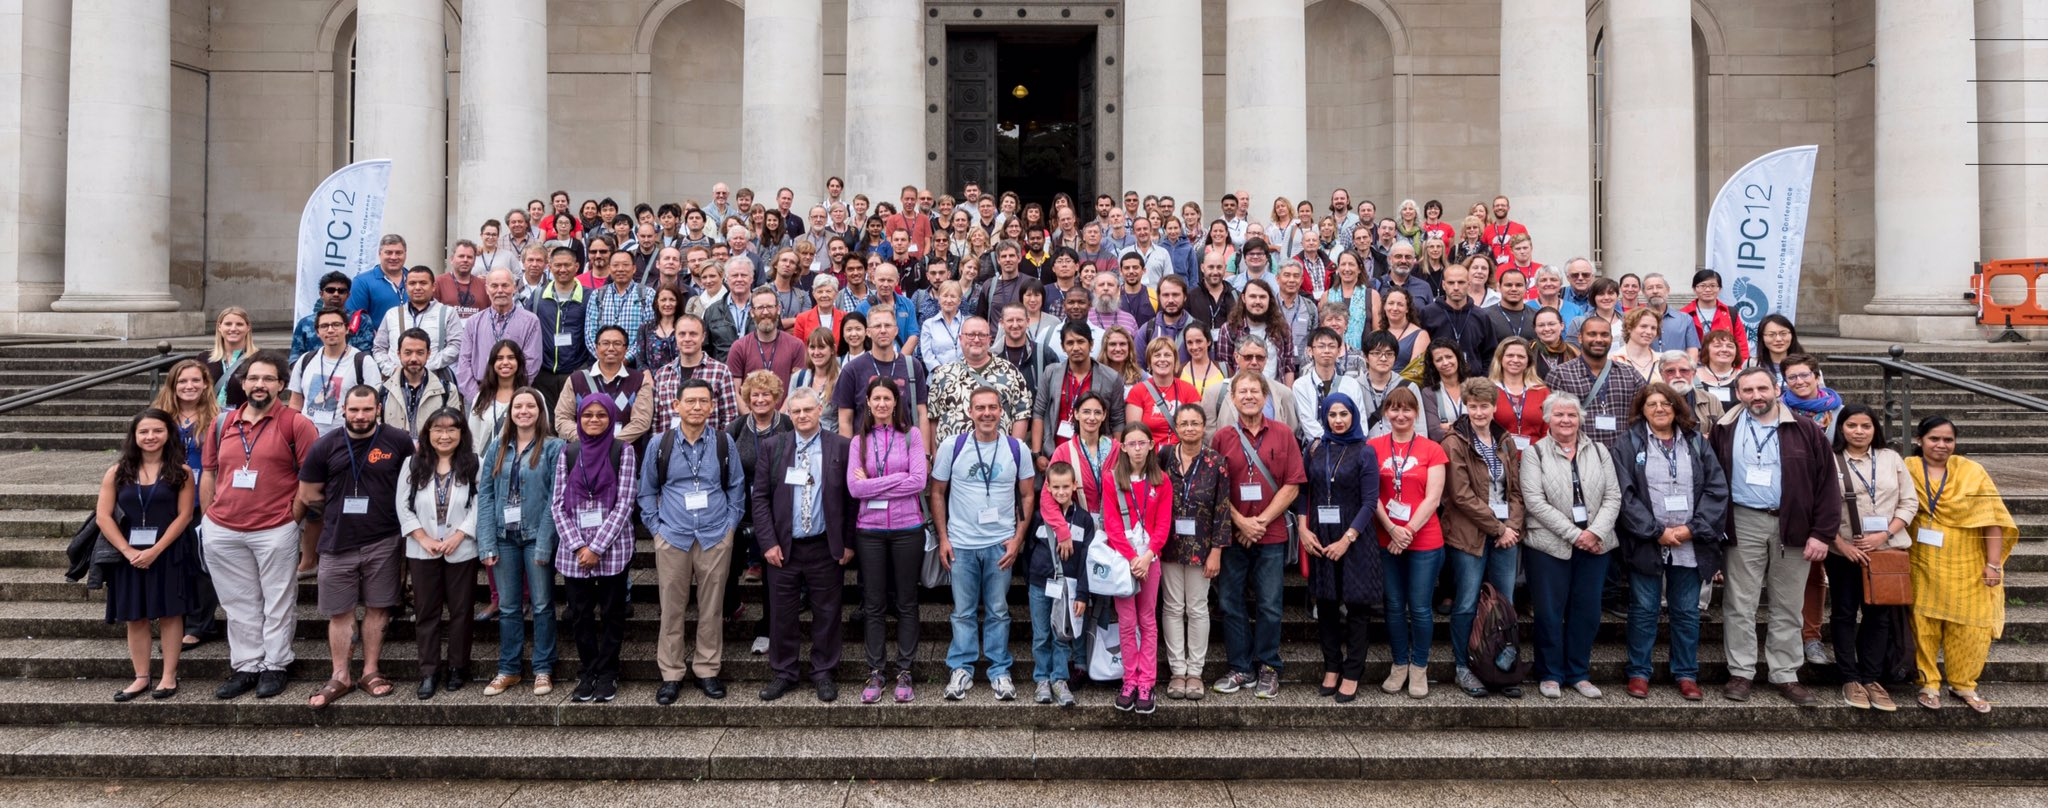 Thumbnail for 12th International Polychaete Conference - Day 1